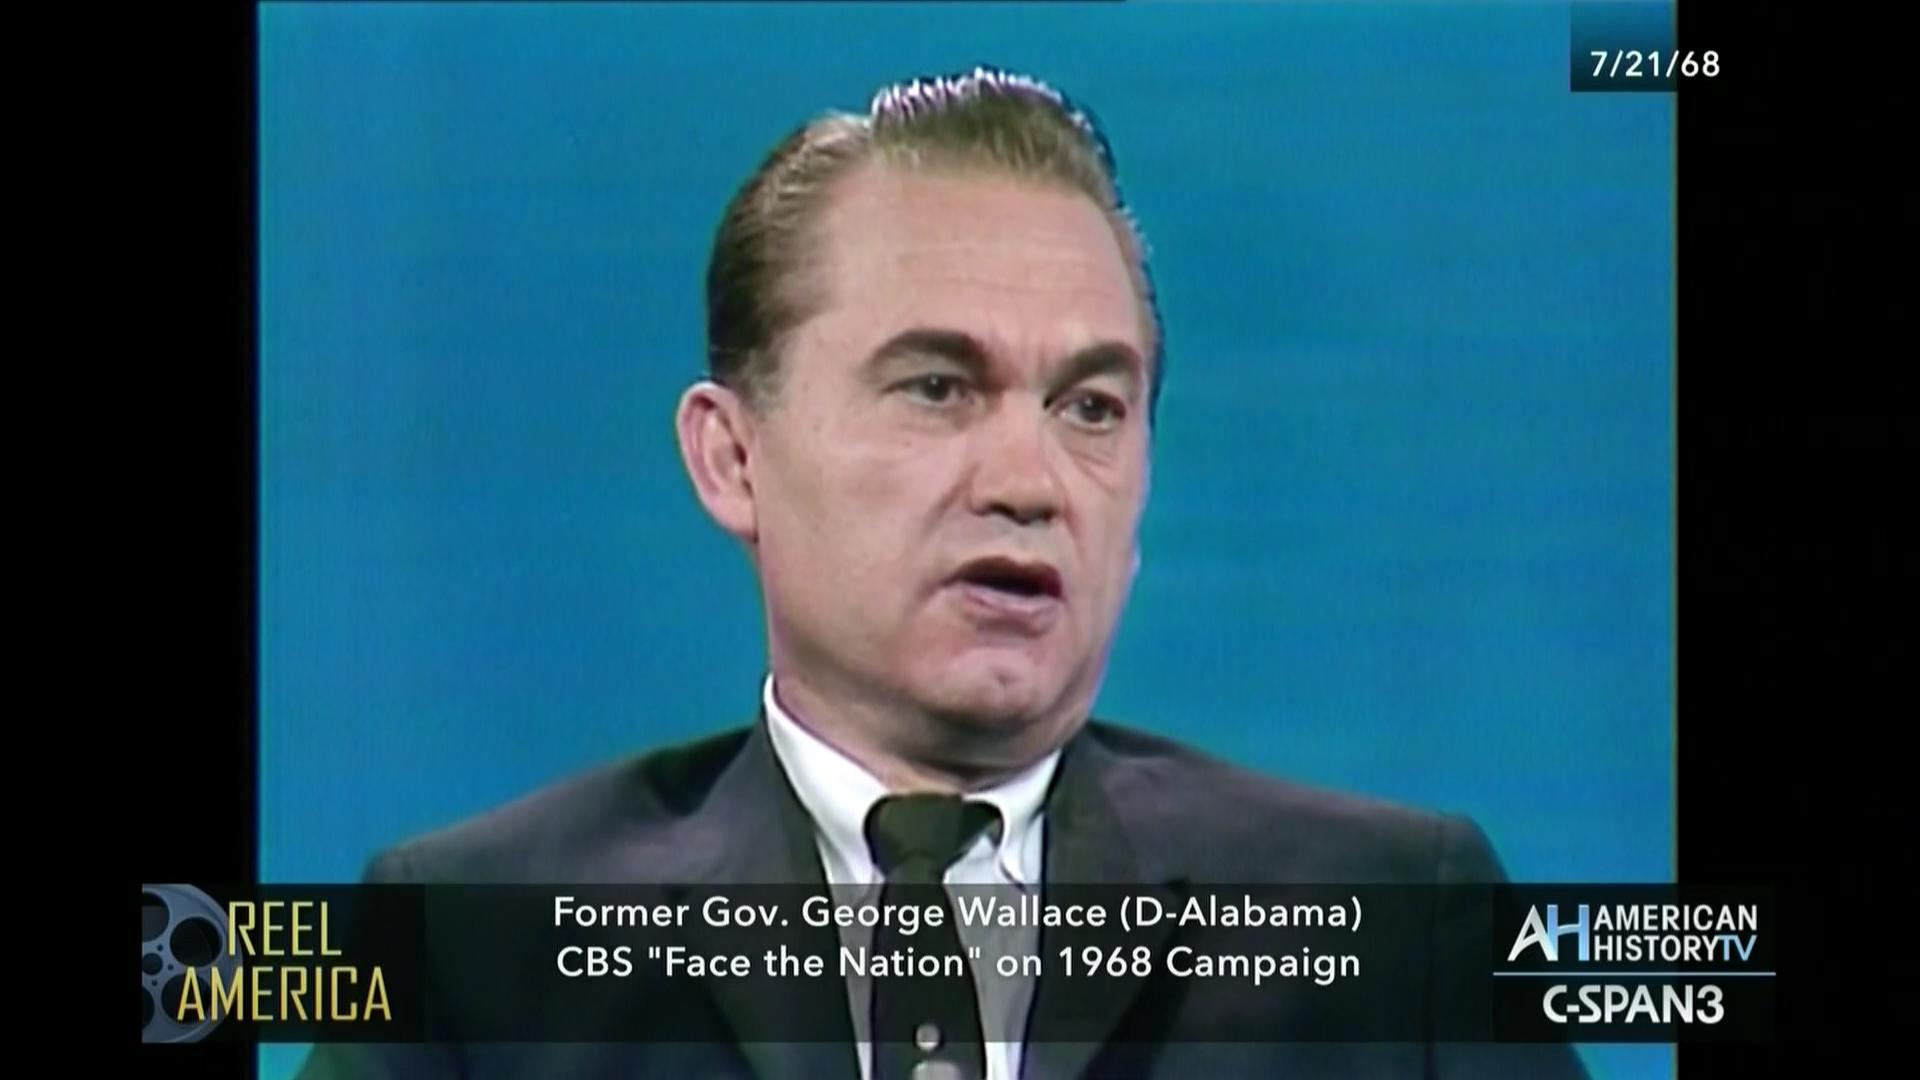 Face the Nation] with George Wallace | C-SPAN.org